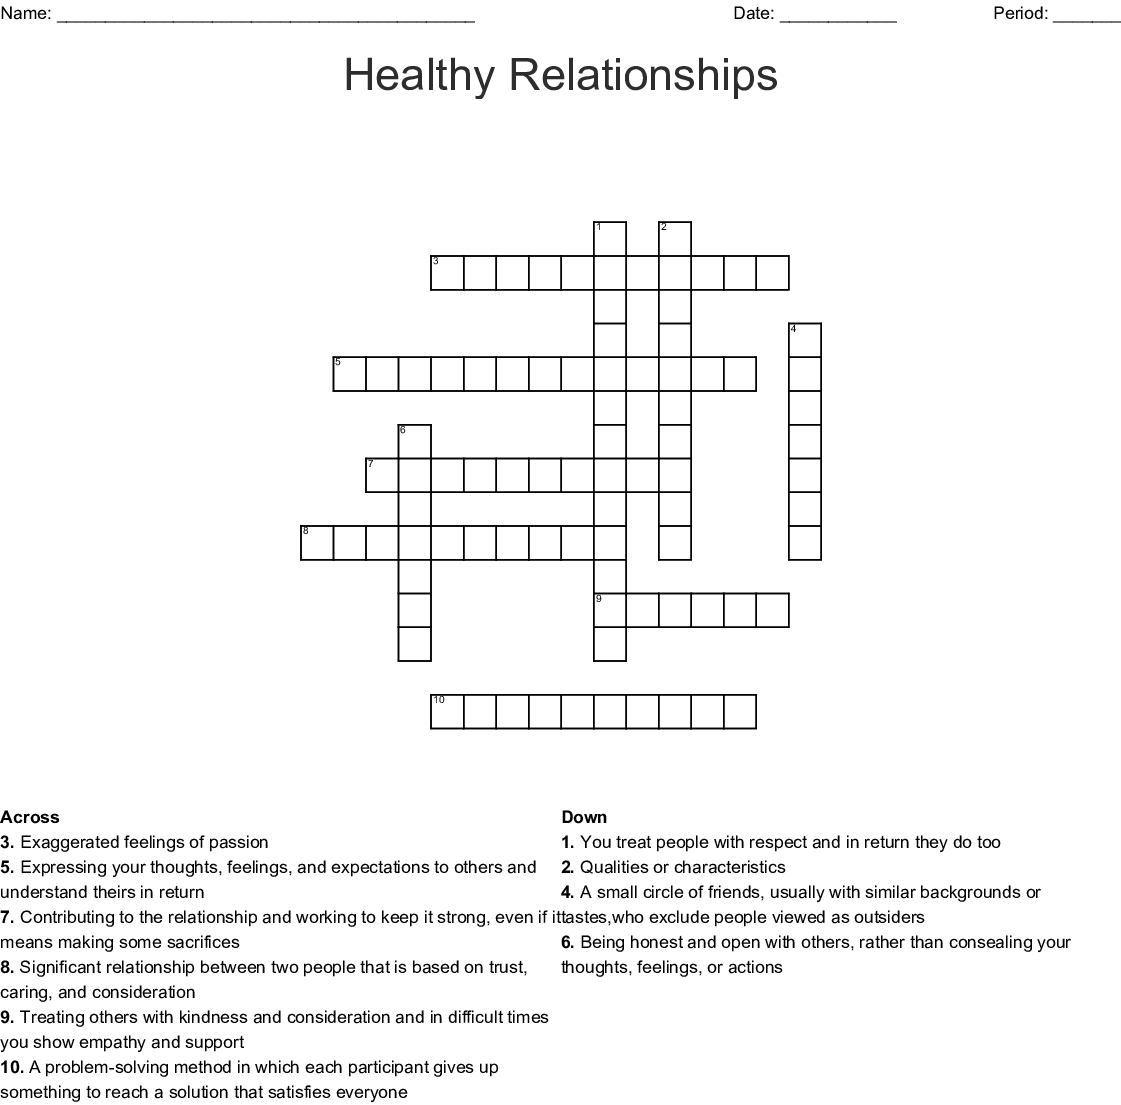 Healthy Relationships Crossword Wordmint